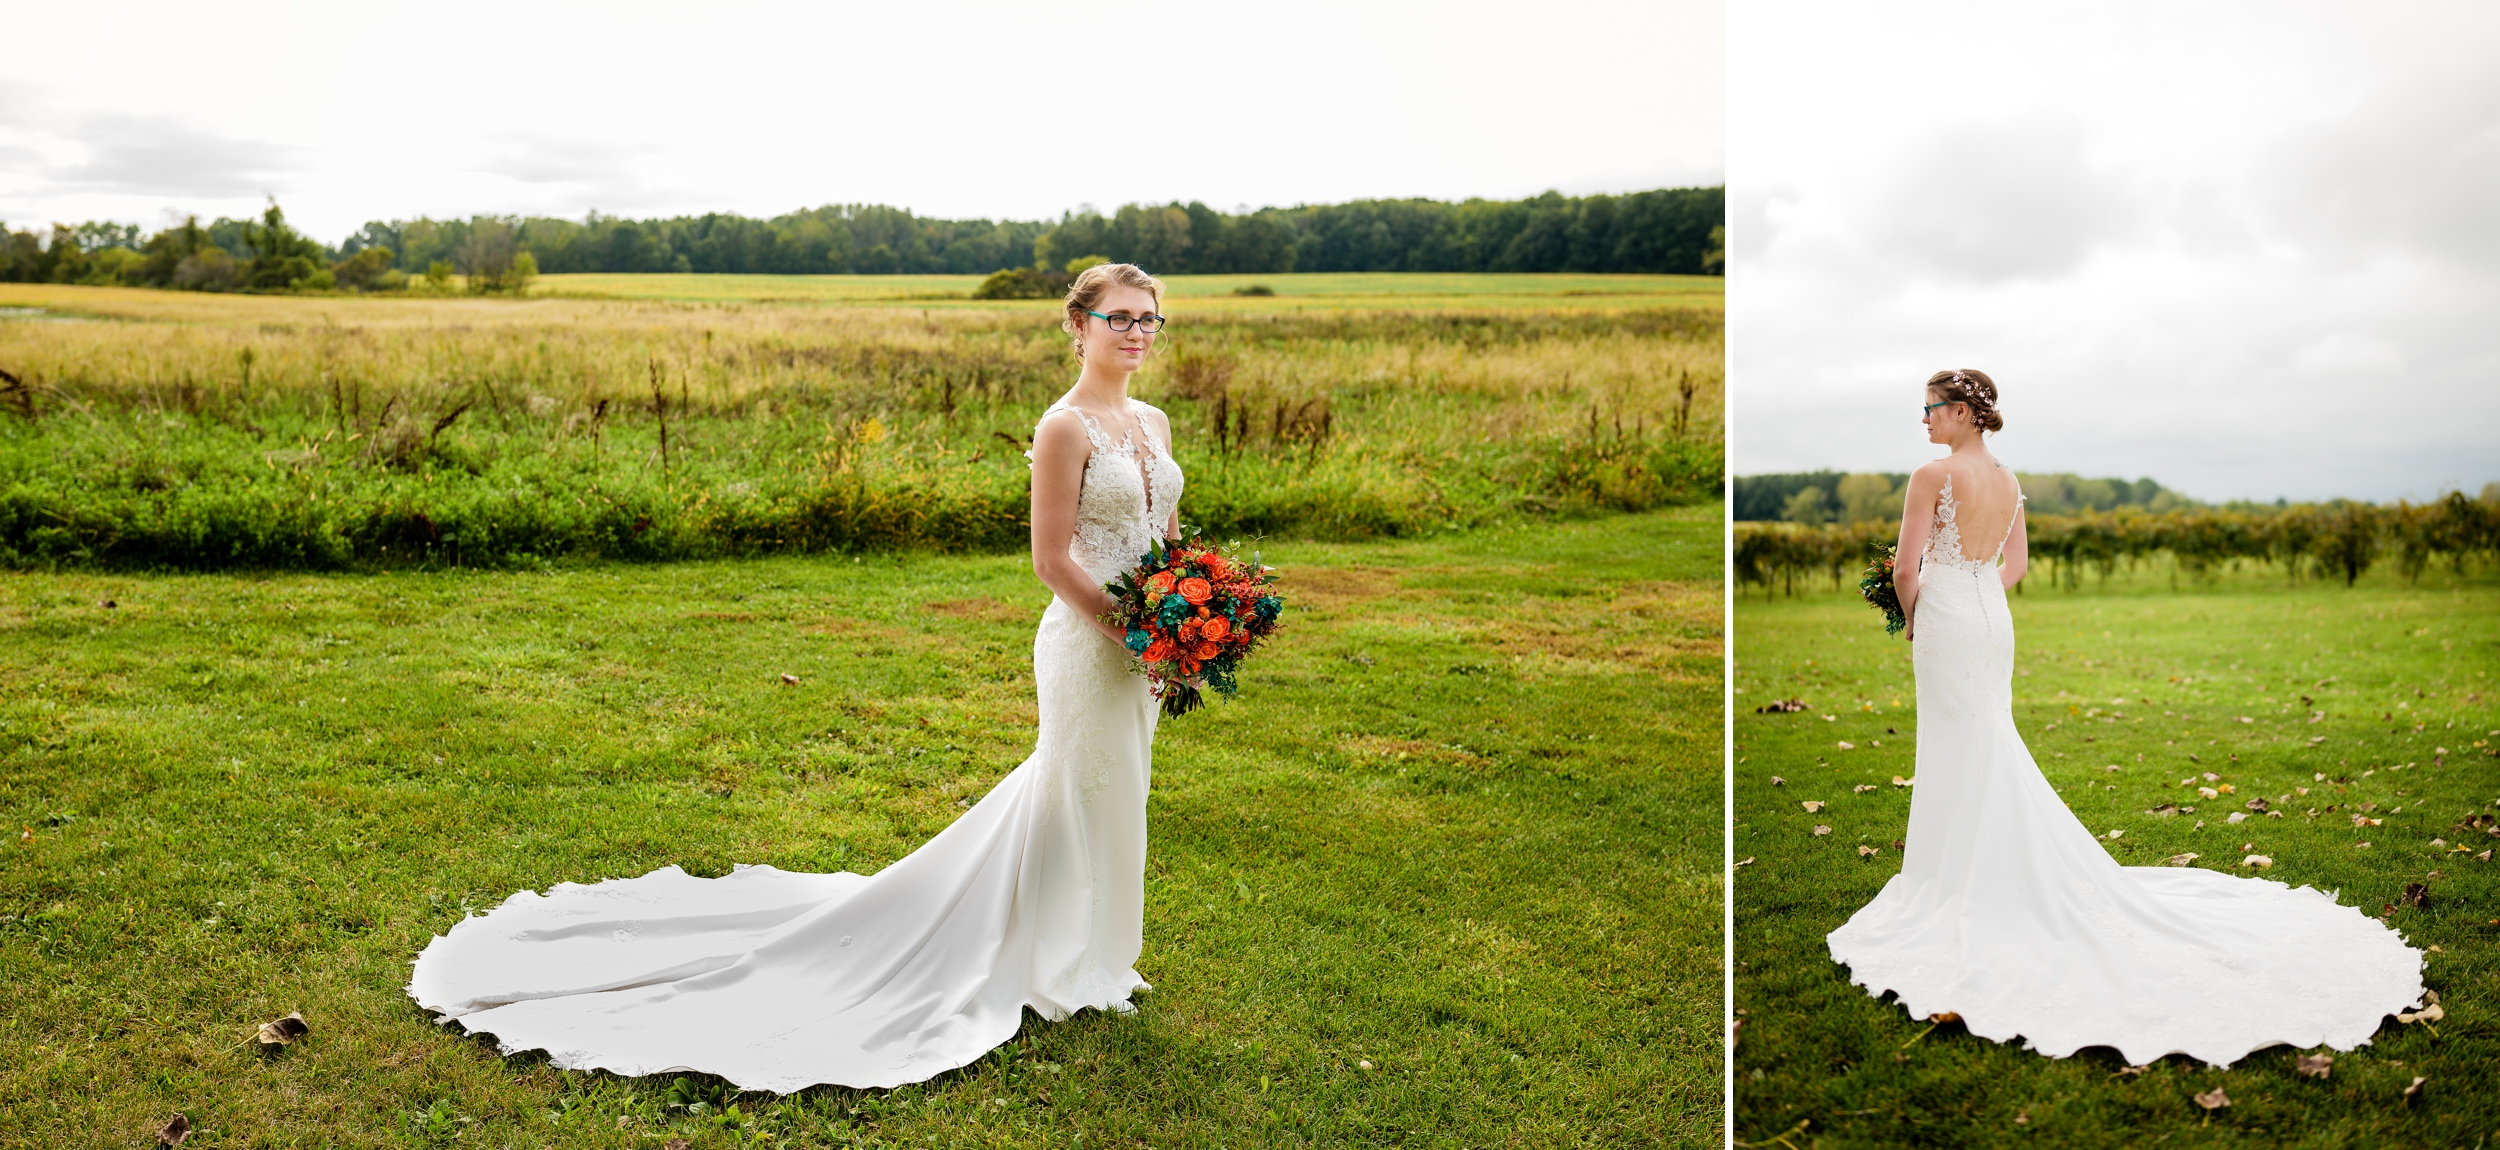 Solo portraits of the bride in her dress with Indiana farmland as the background.